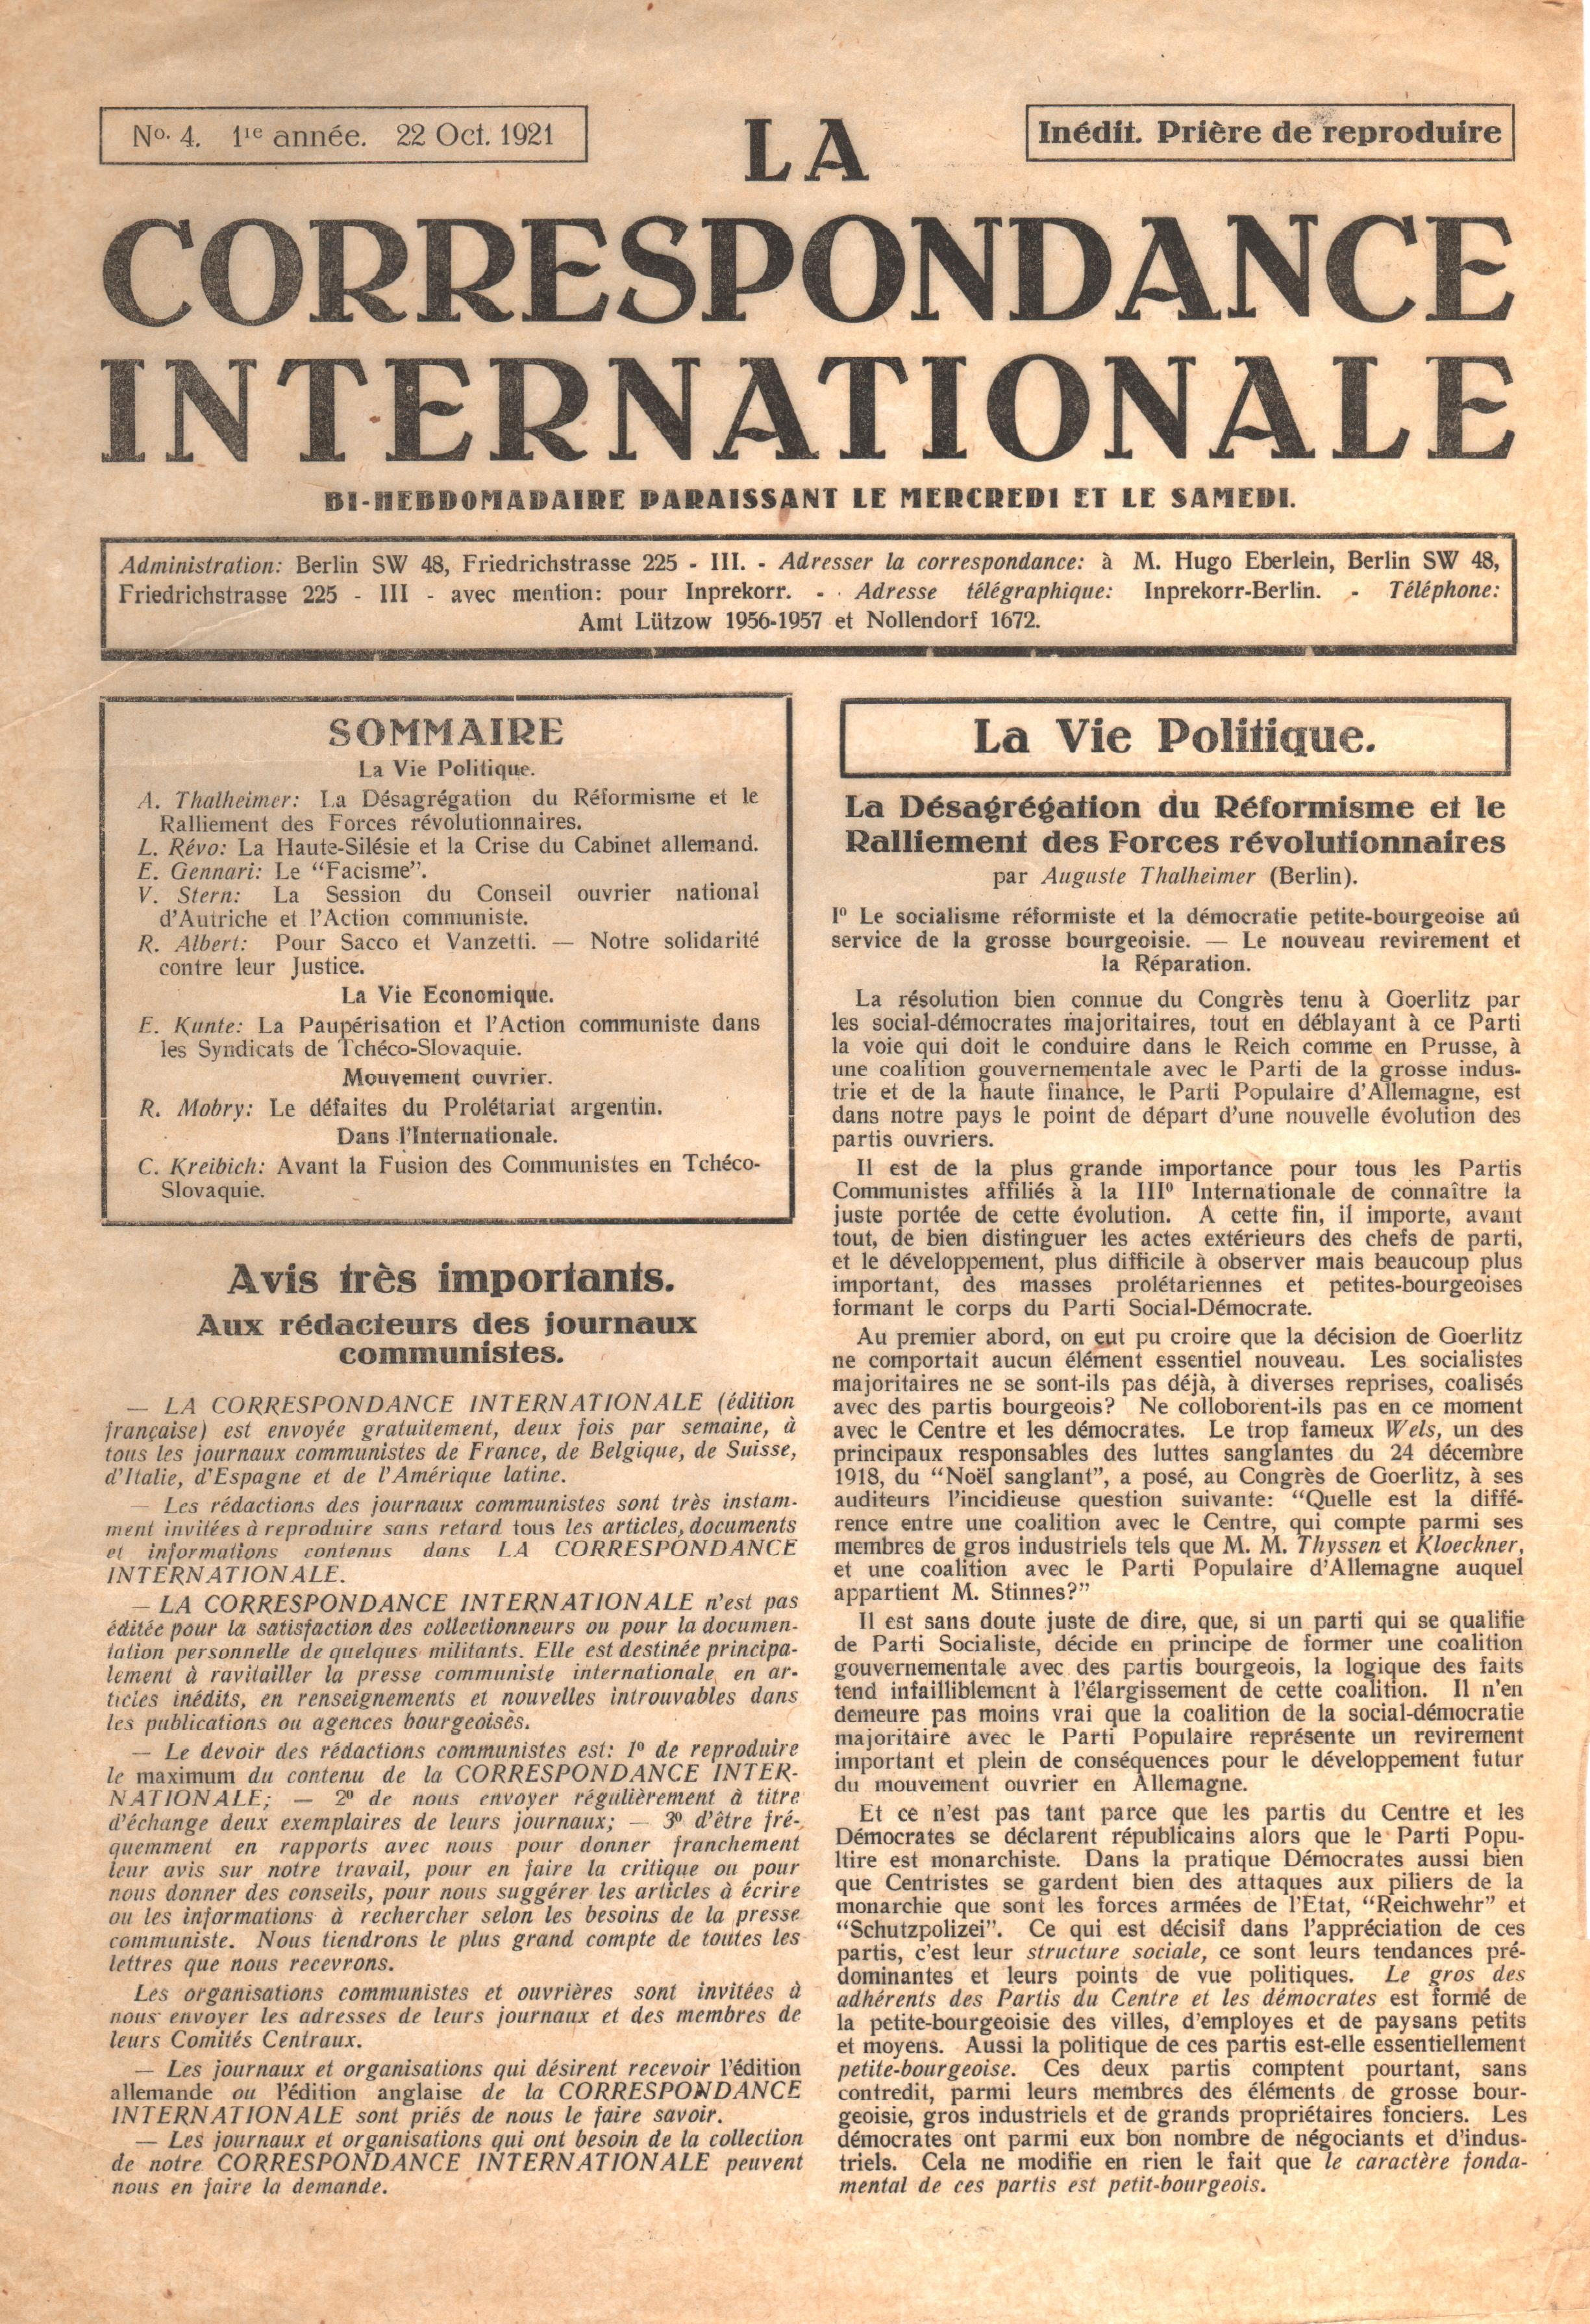 Correspondance Internationale n. 4 - pag. 1